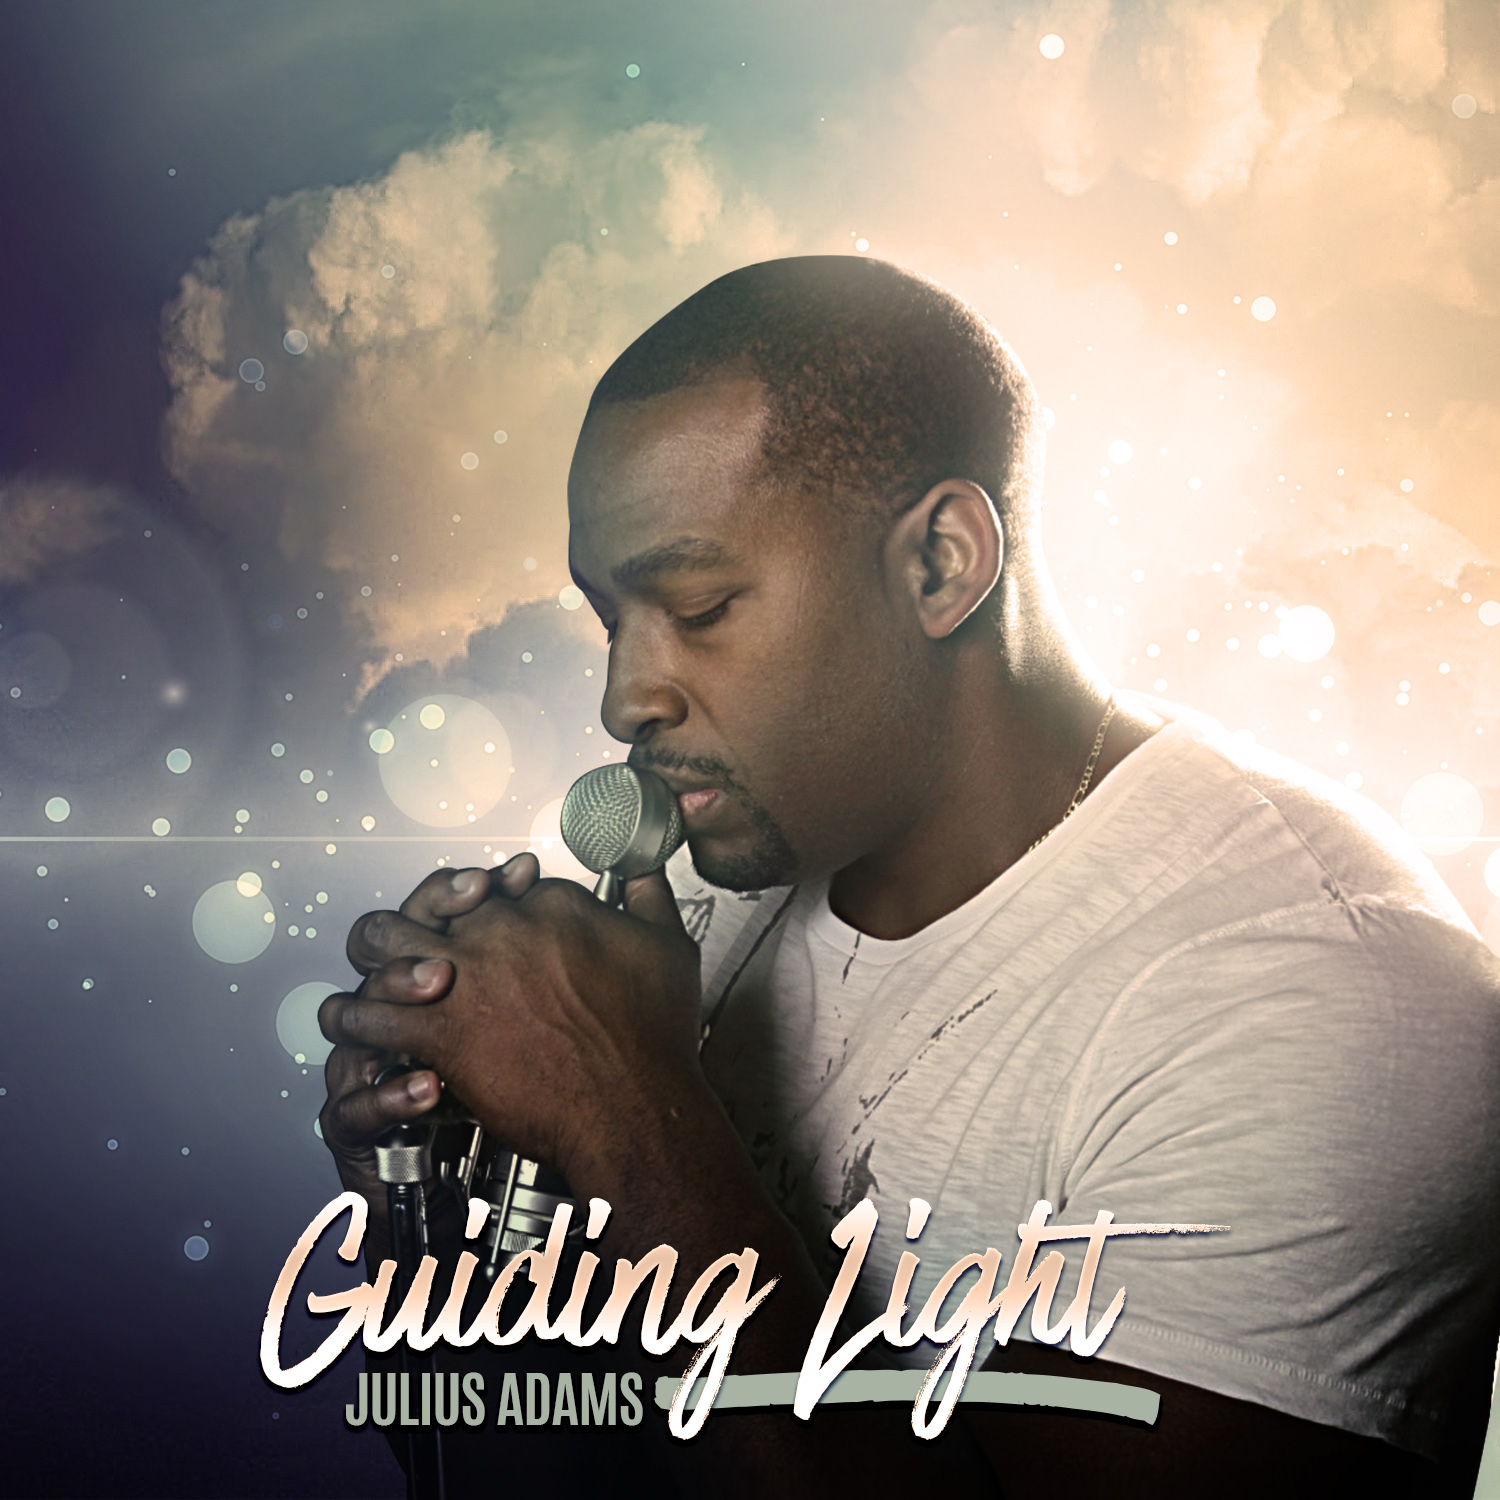 Purchase Guiding Light by clicking on the picture